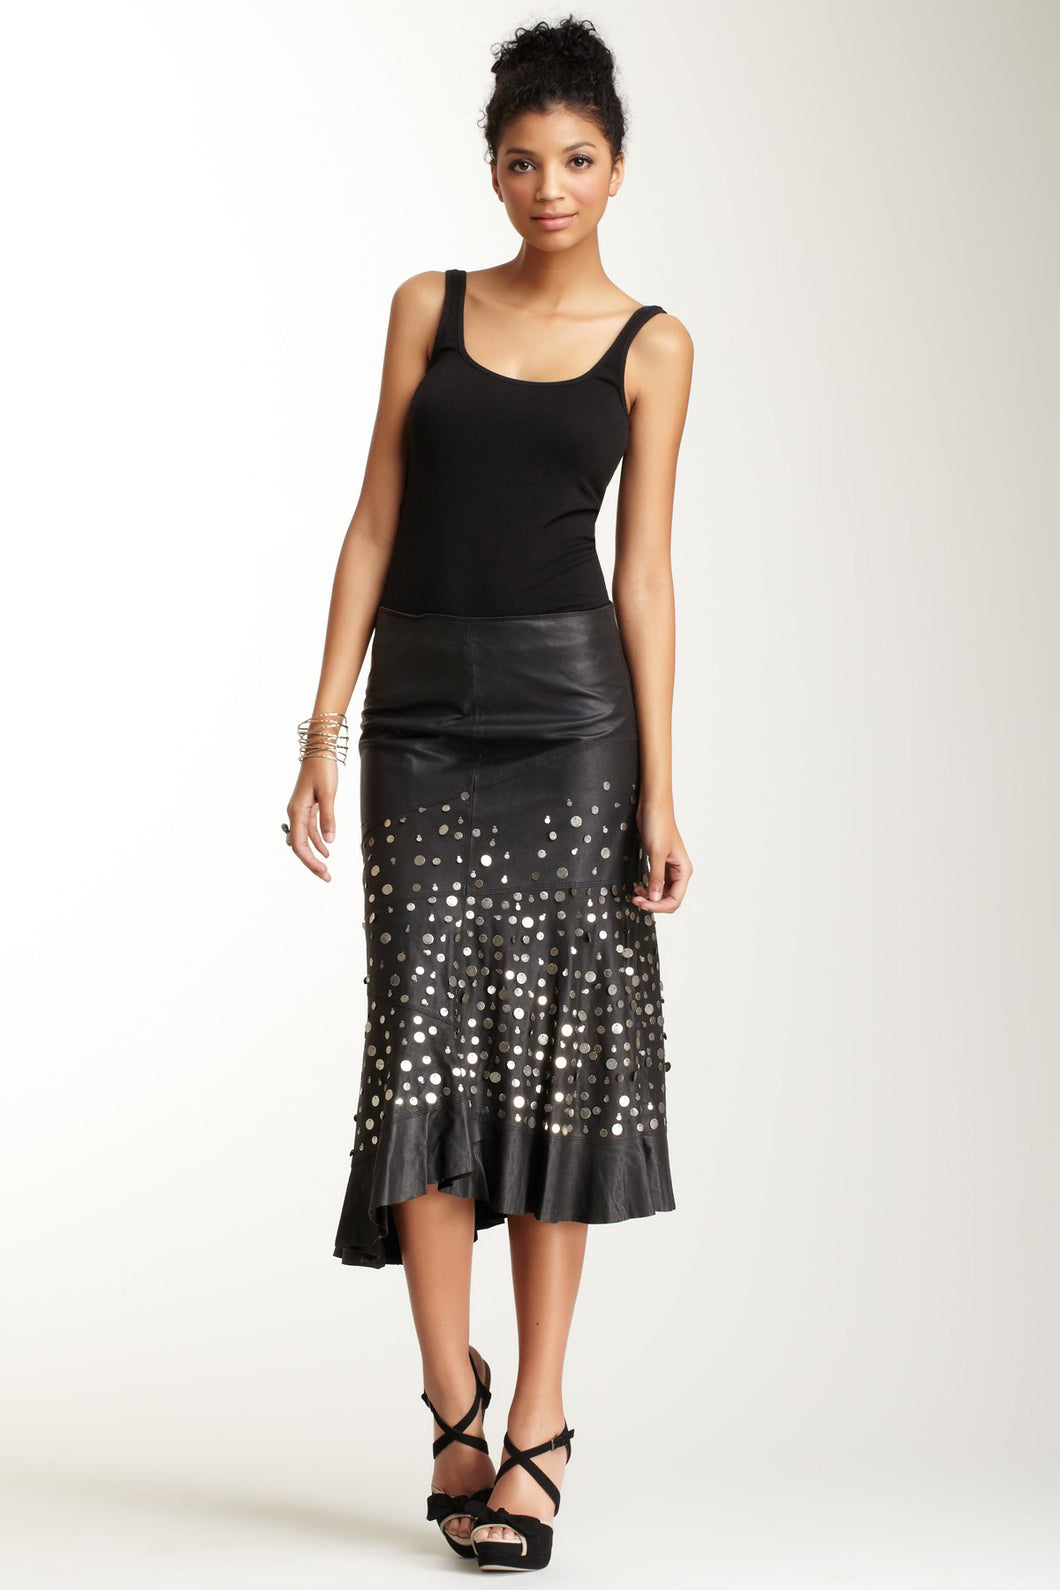 Antiqued Goat Leather Tango Skirt - Black